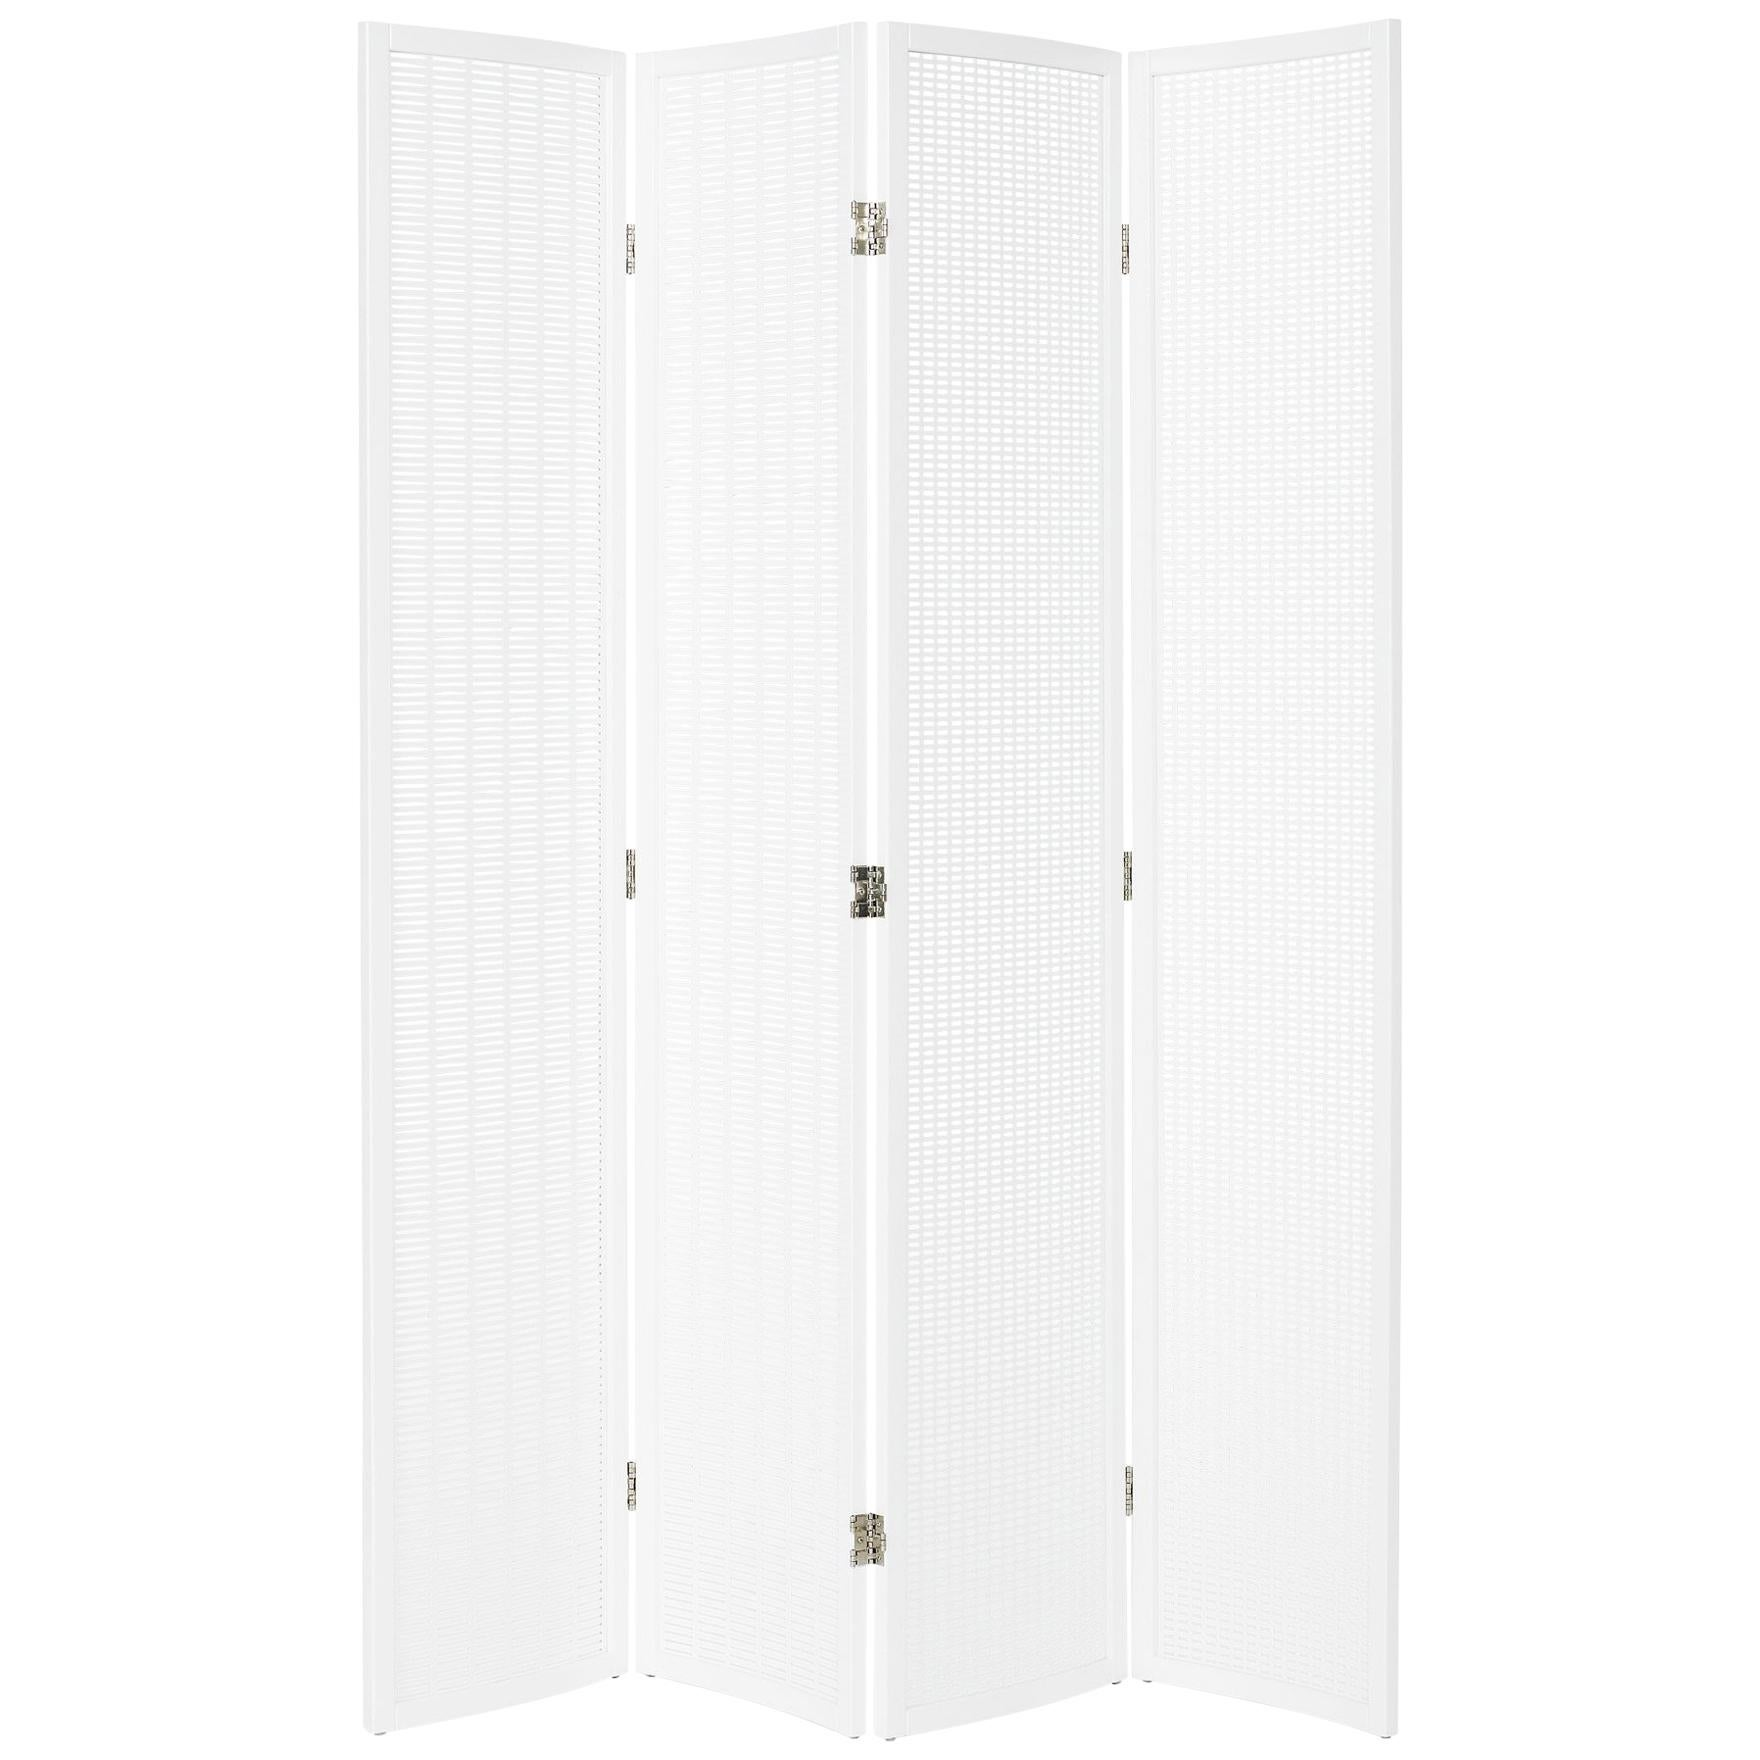 ClassiCon Folding Screen in White by Eileen Gray